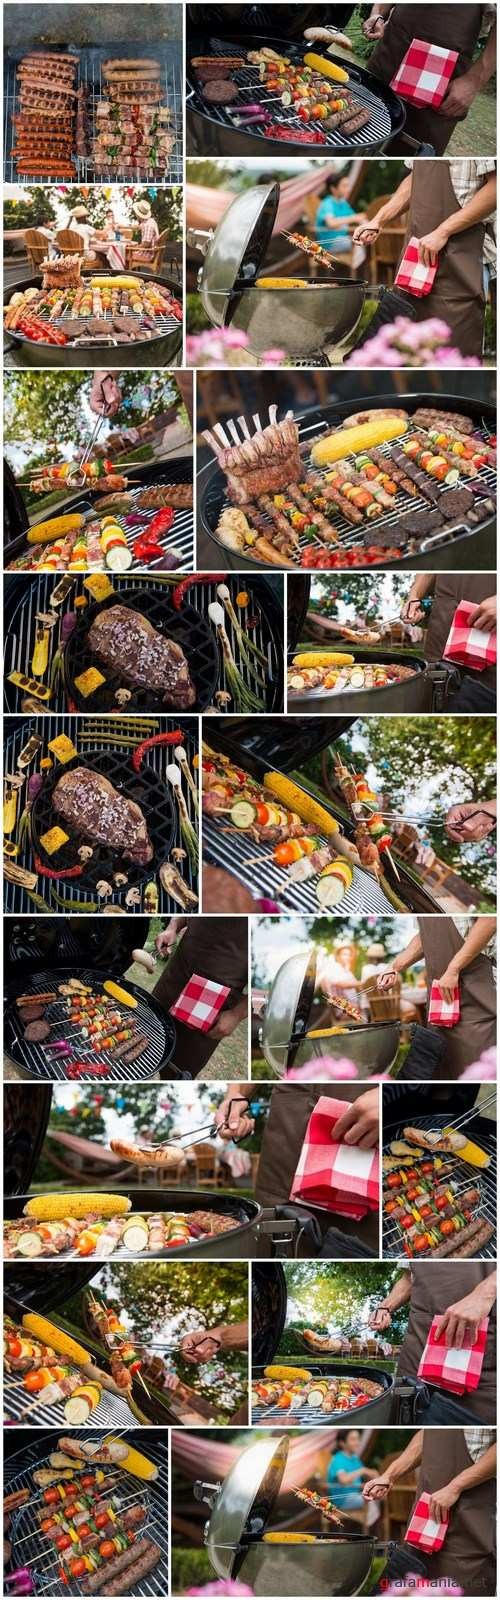 Assorted delicious grilled meat with vegetable on a barbecue - 18xUHQ JPEG Photo Stock